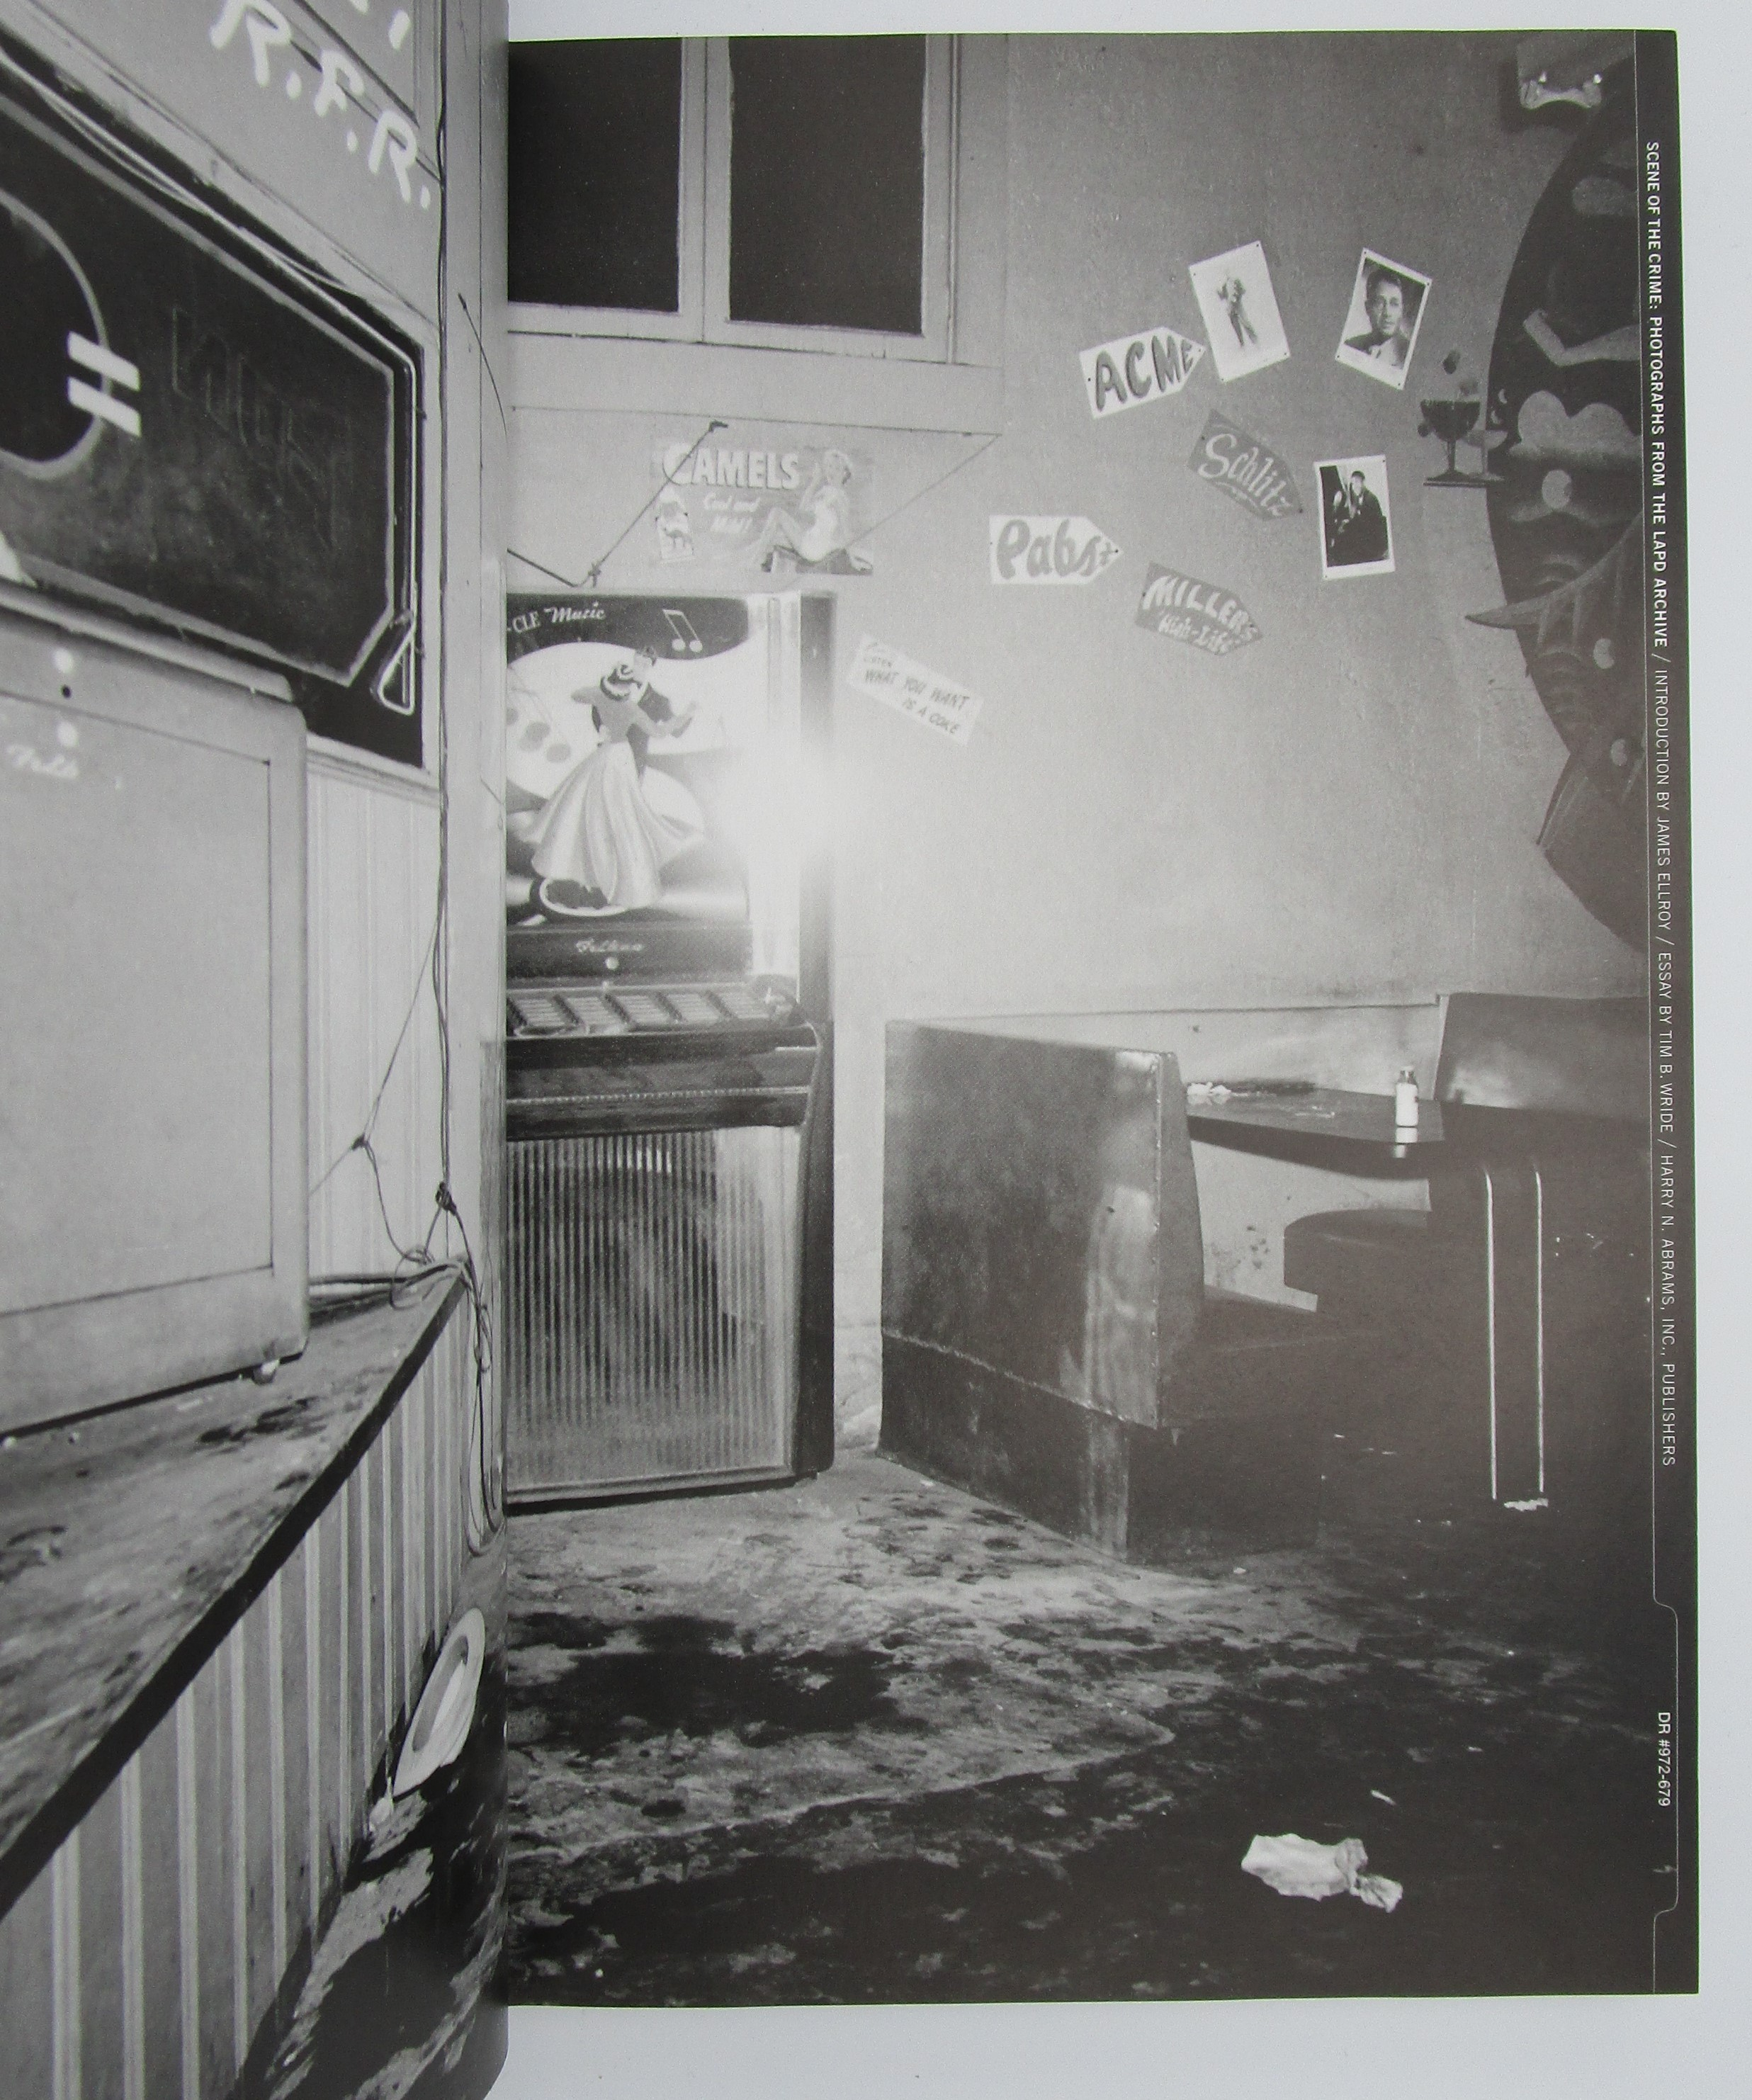 SCENE OF THE CRIME: Photographs From The LAPD Archive - 2004